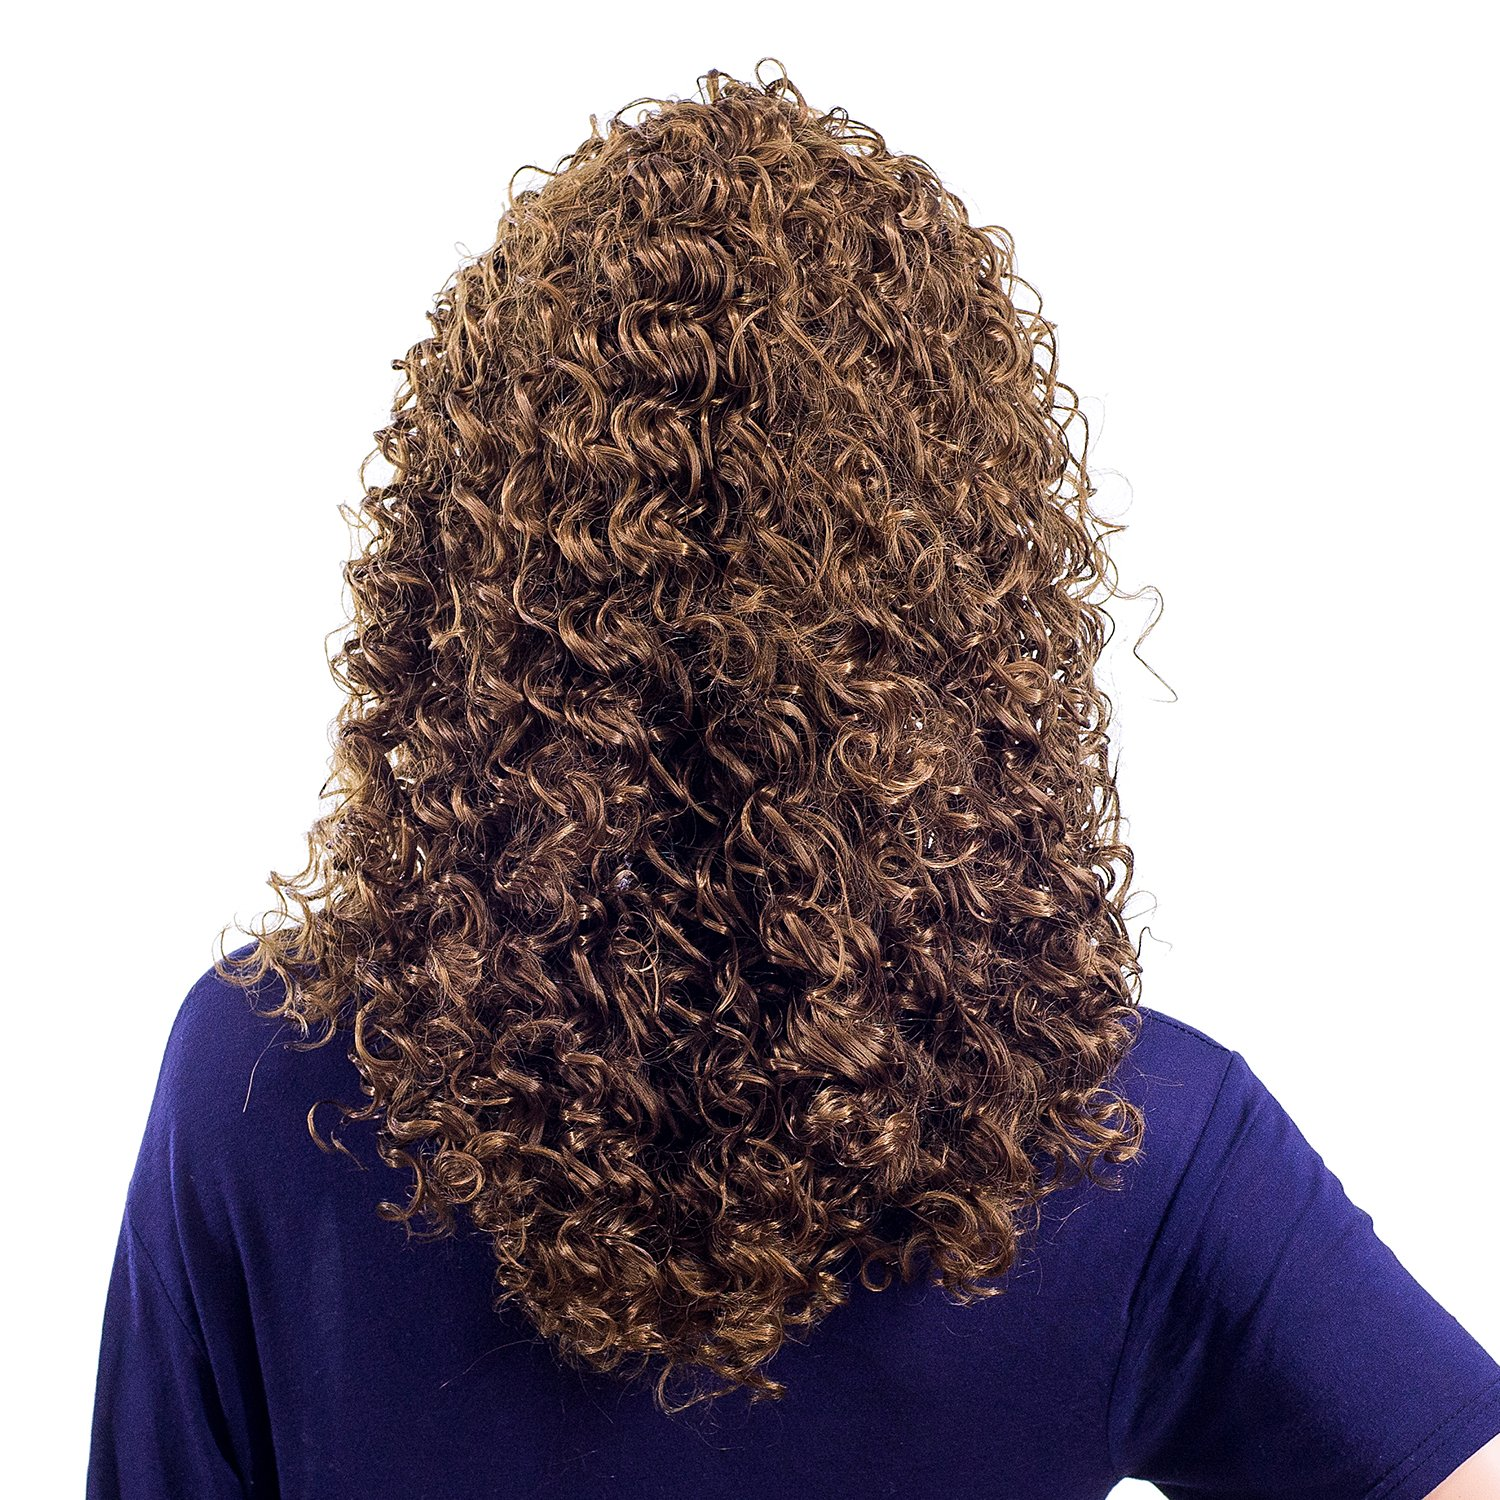 SWACC 20-Inch Long Big Bouffant Curly Wigs for Women Synthetic Heat Resistant Fiber Hair Pieces with Wig Cap (Light Dirty Brown-12#) by SWACC (Image #4)